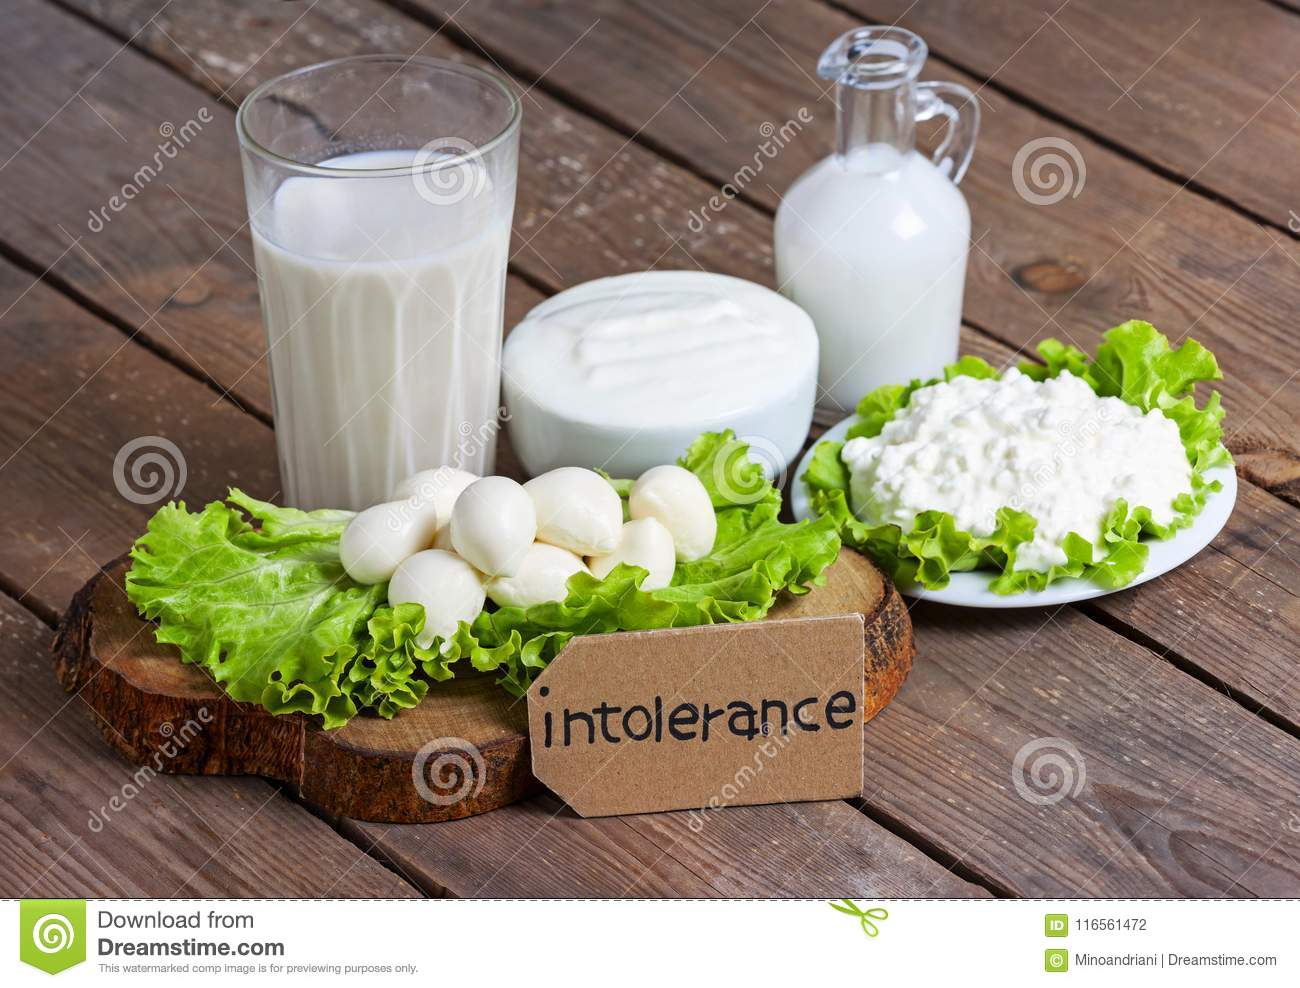 Lactose intolerance with wood background